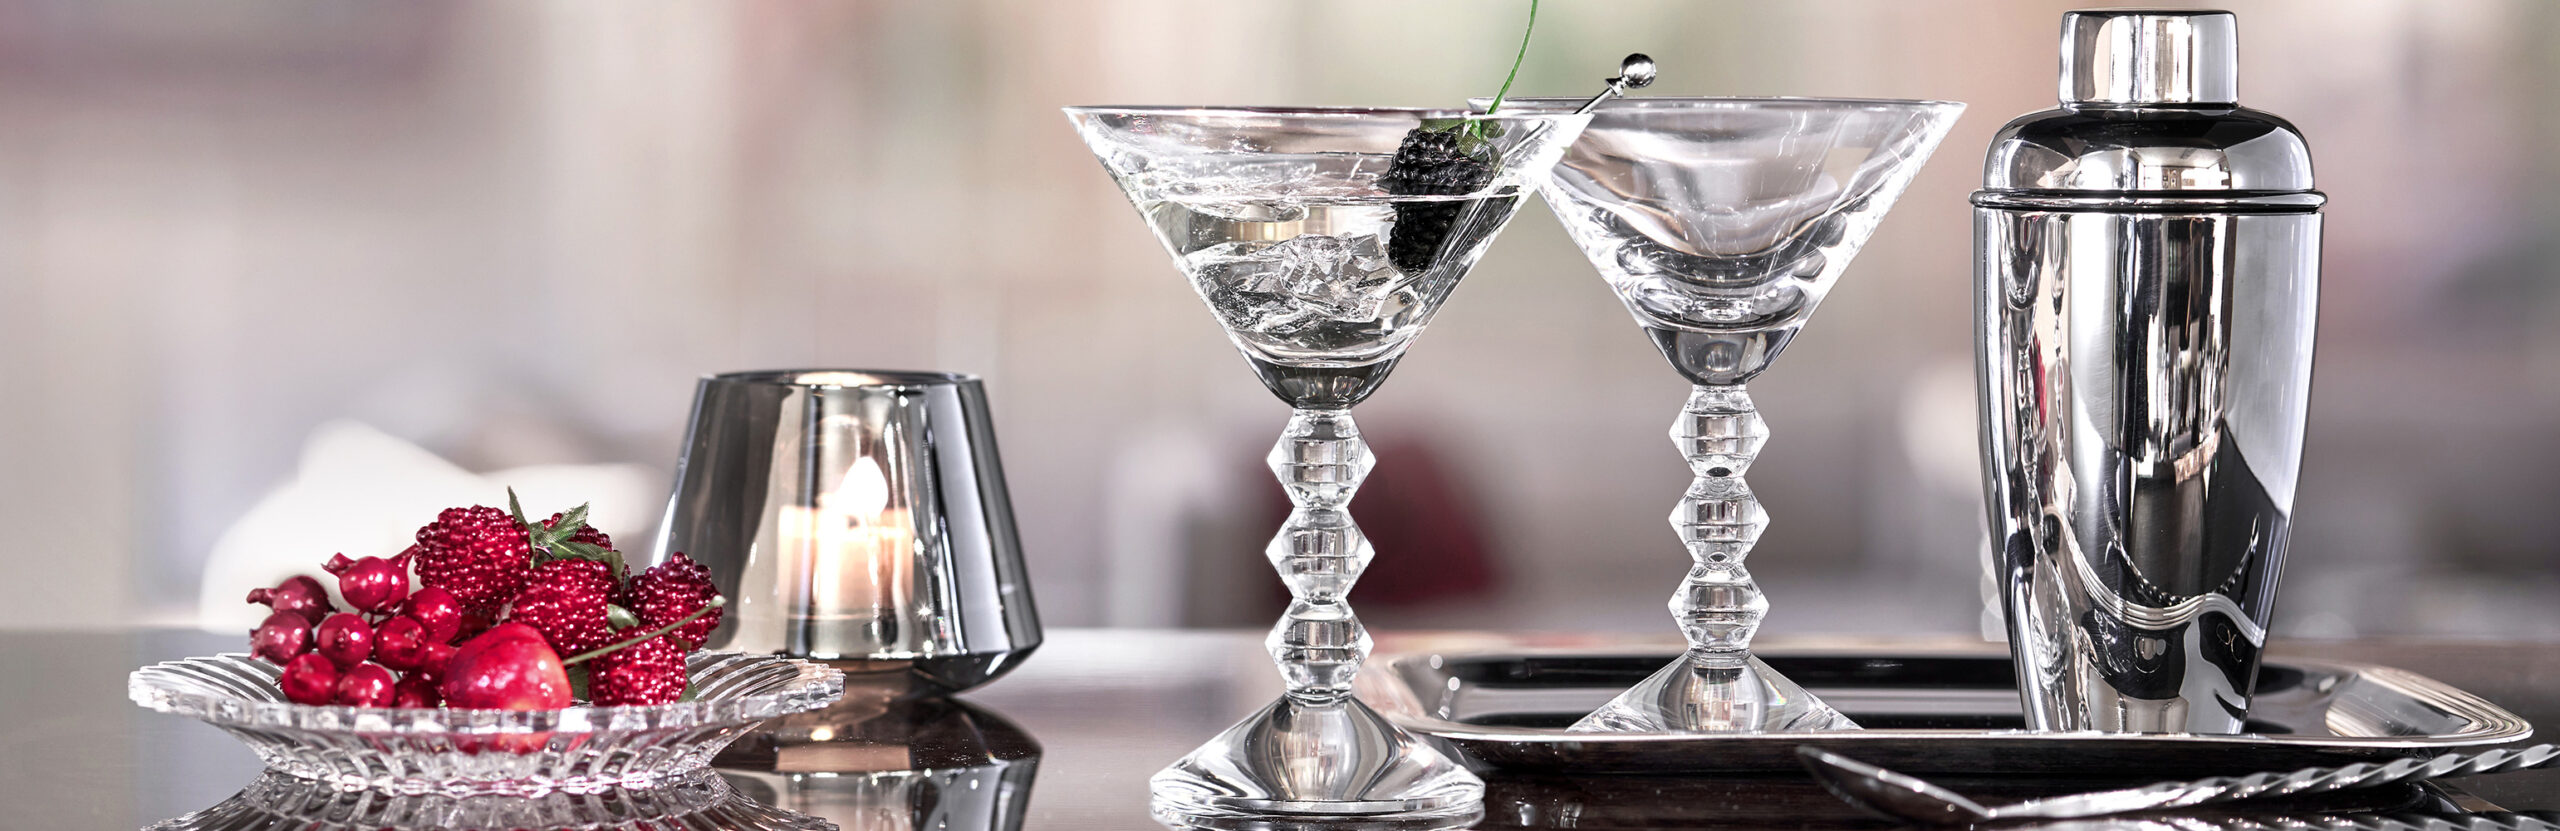 Exquisite World of Baccarat Crystal